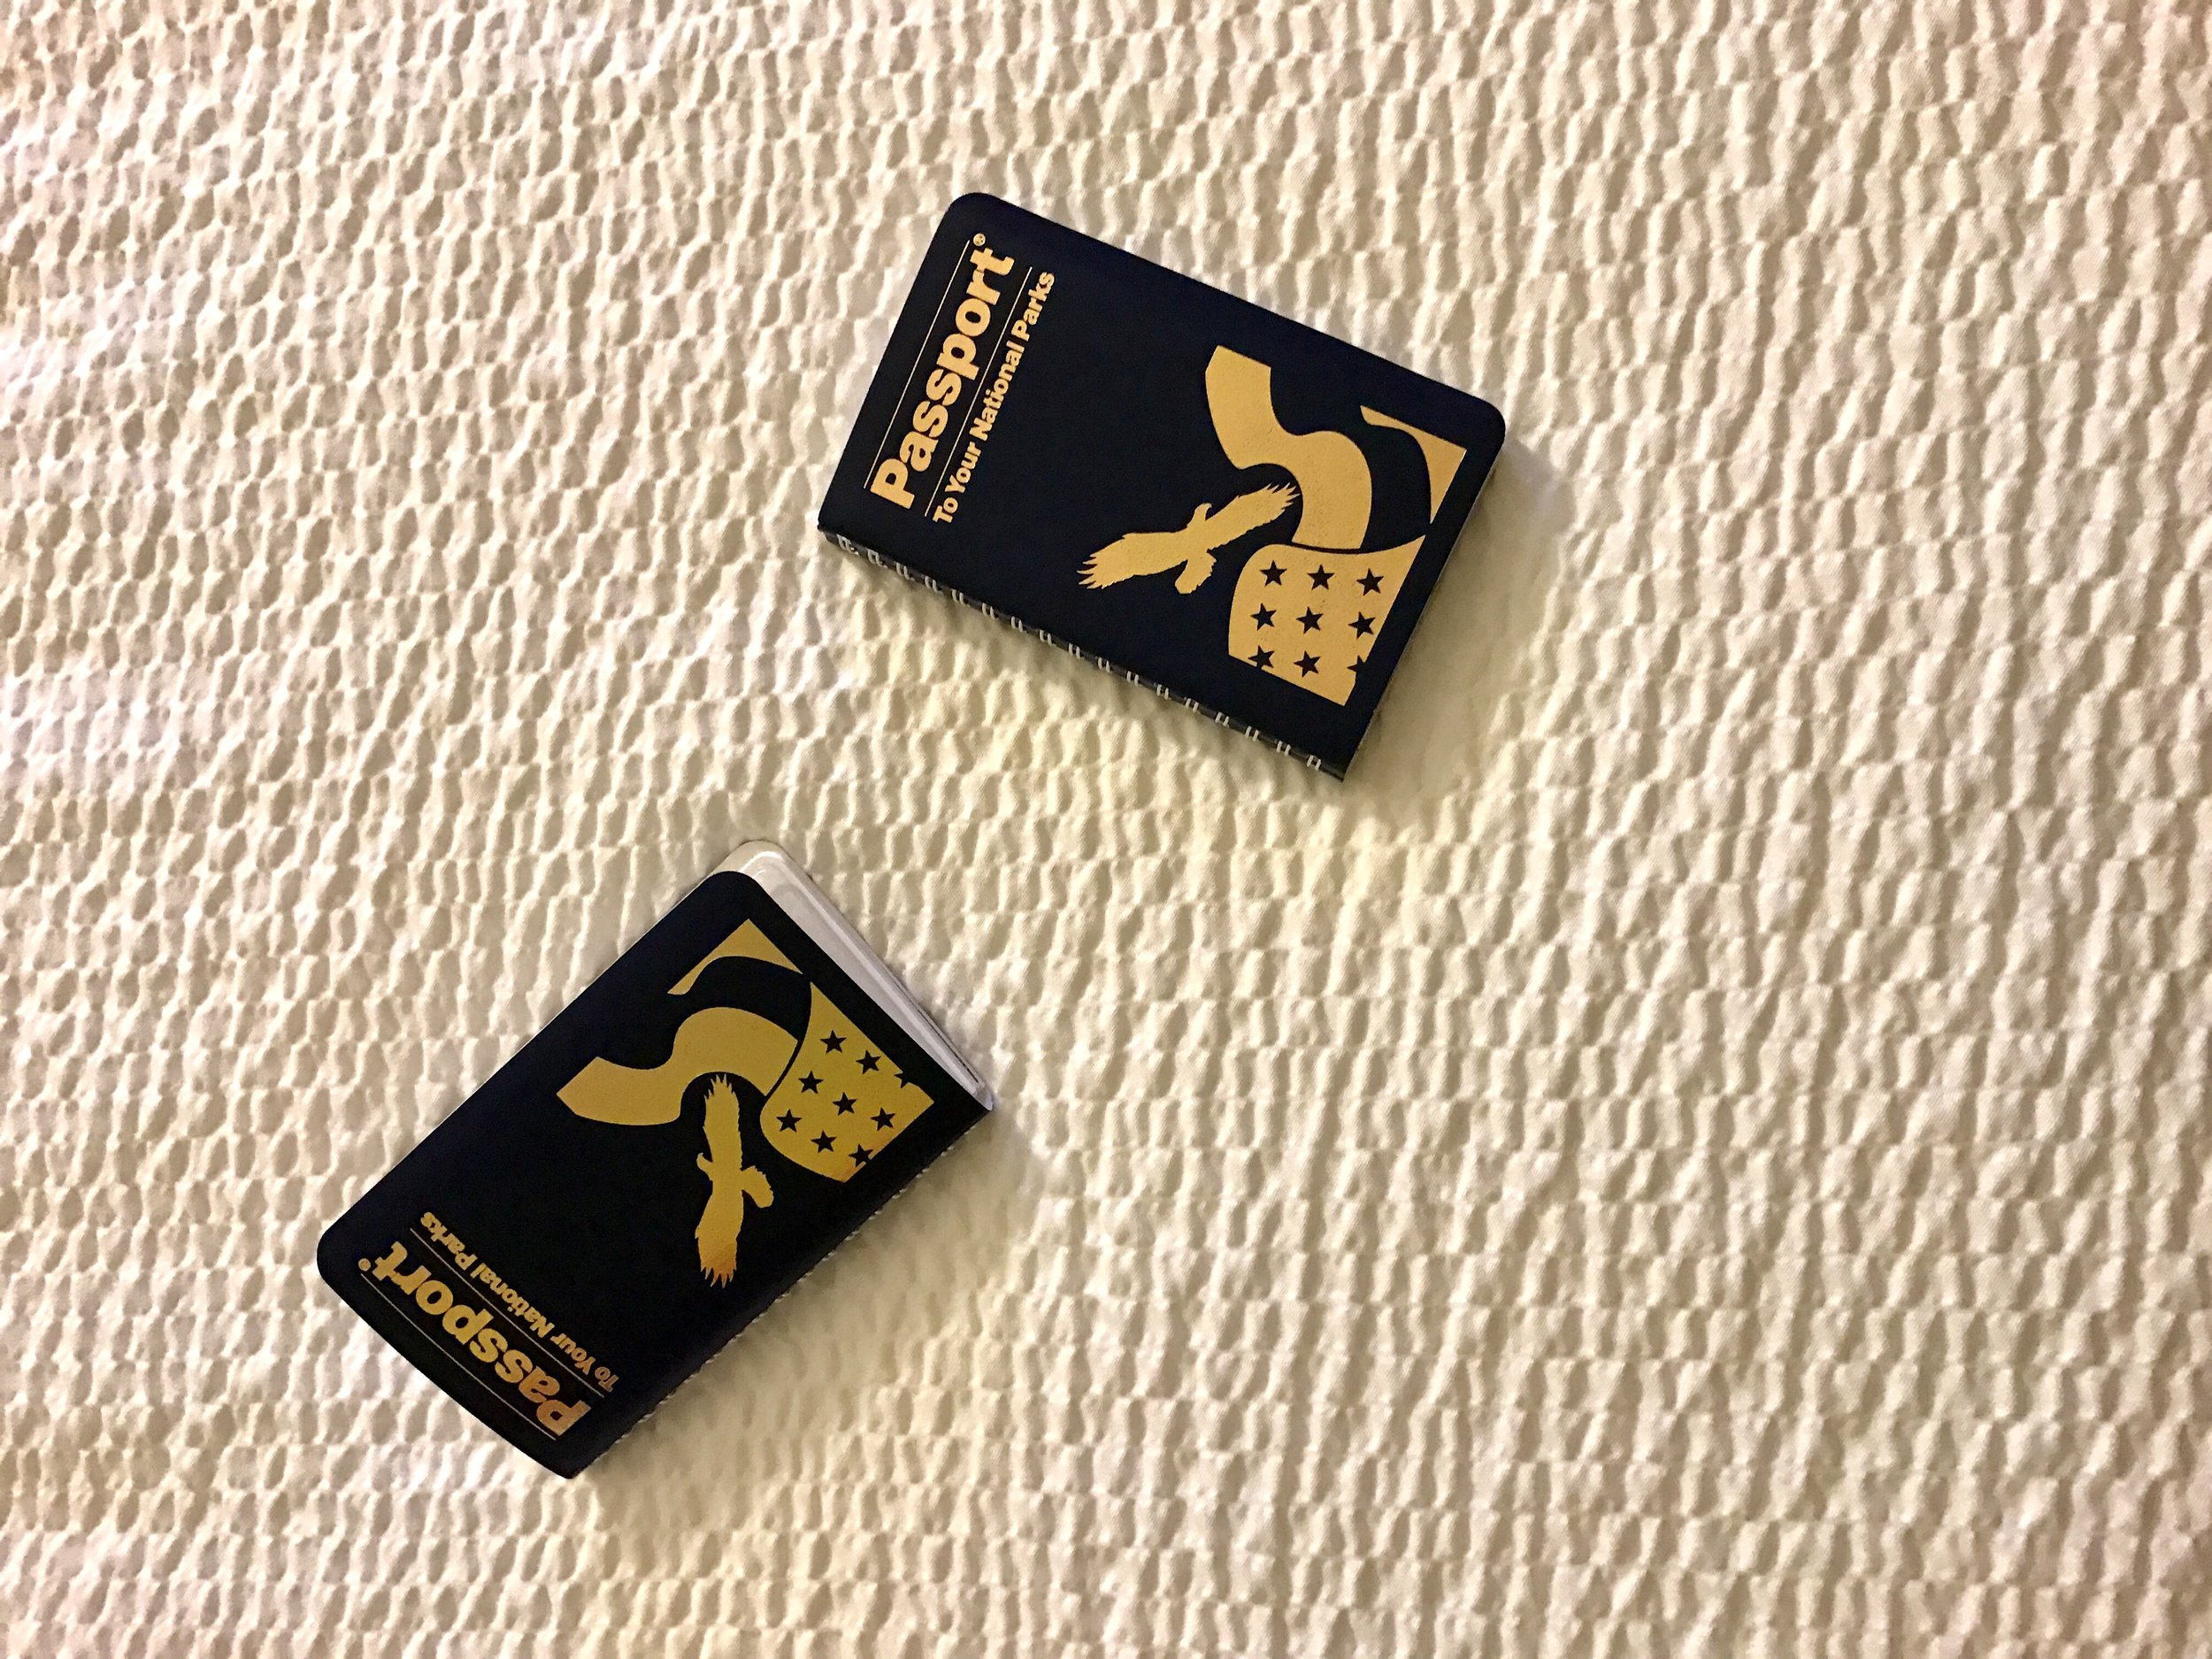 Be sure to buy your kids National Park Passports while they are young! They get a stamp at each park and monument they visit! My kids think these are more valuable than their regular passports! And I love them because they always provide a cheap souvenir of each park!